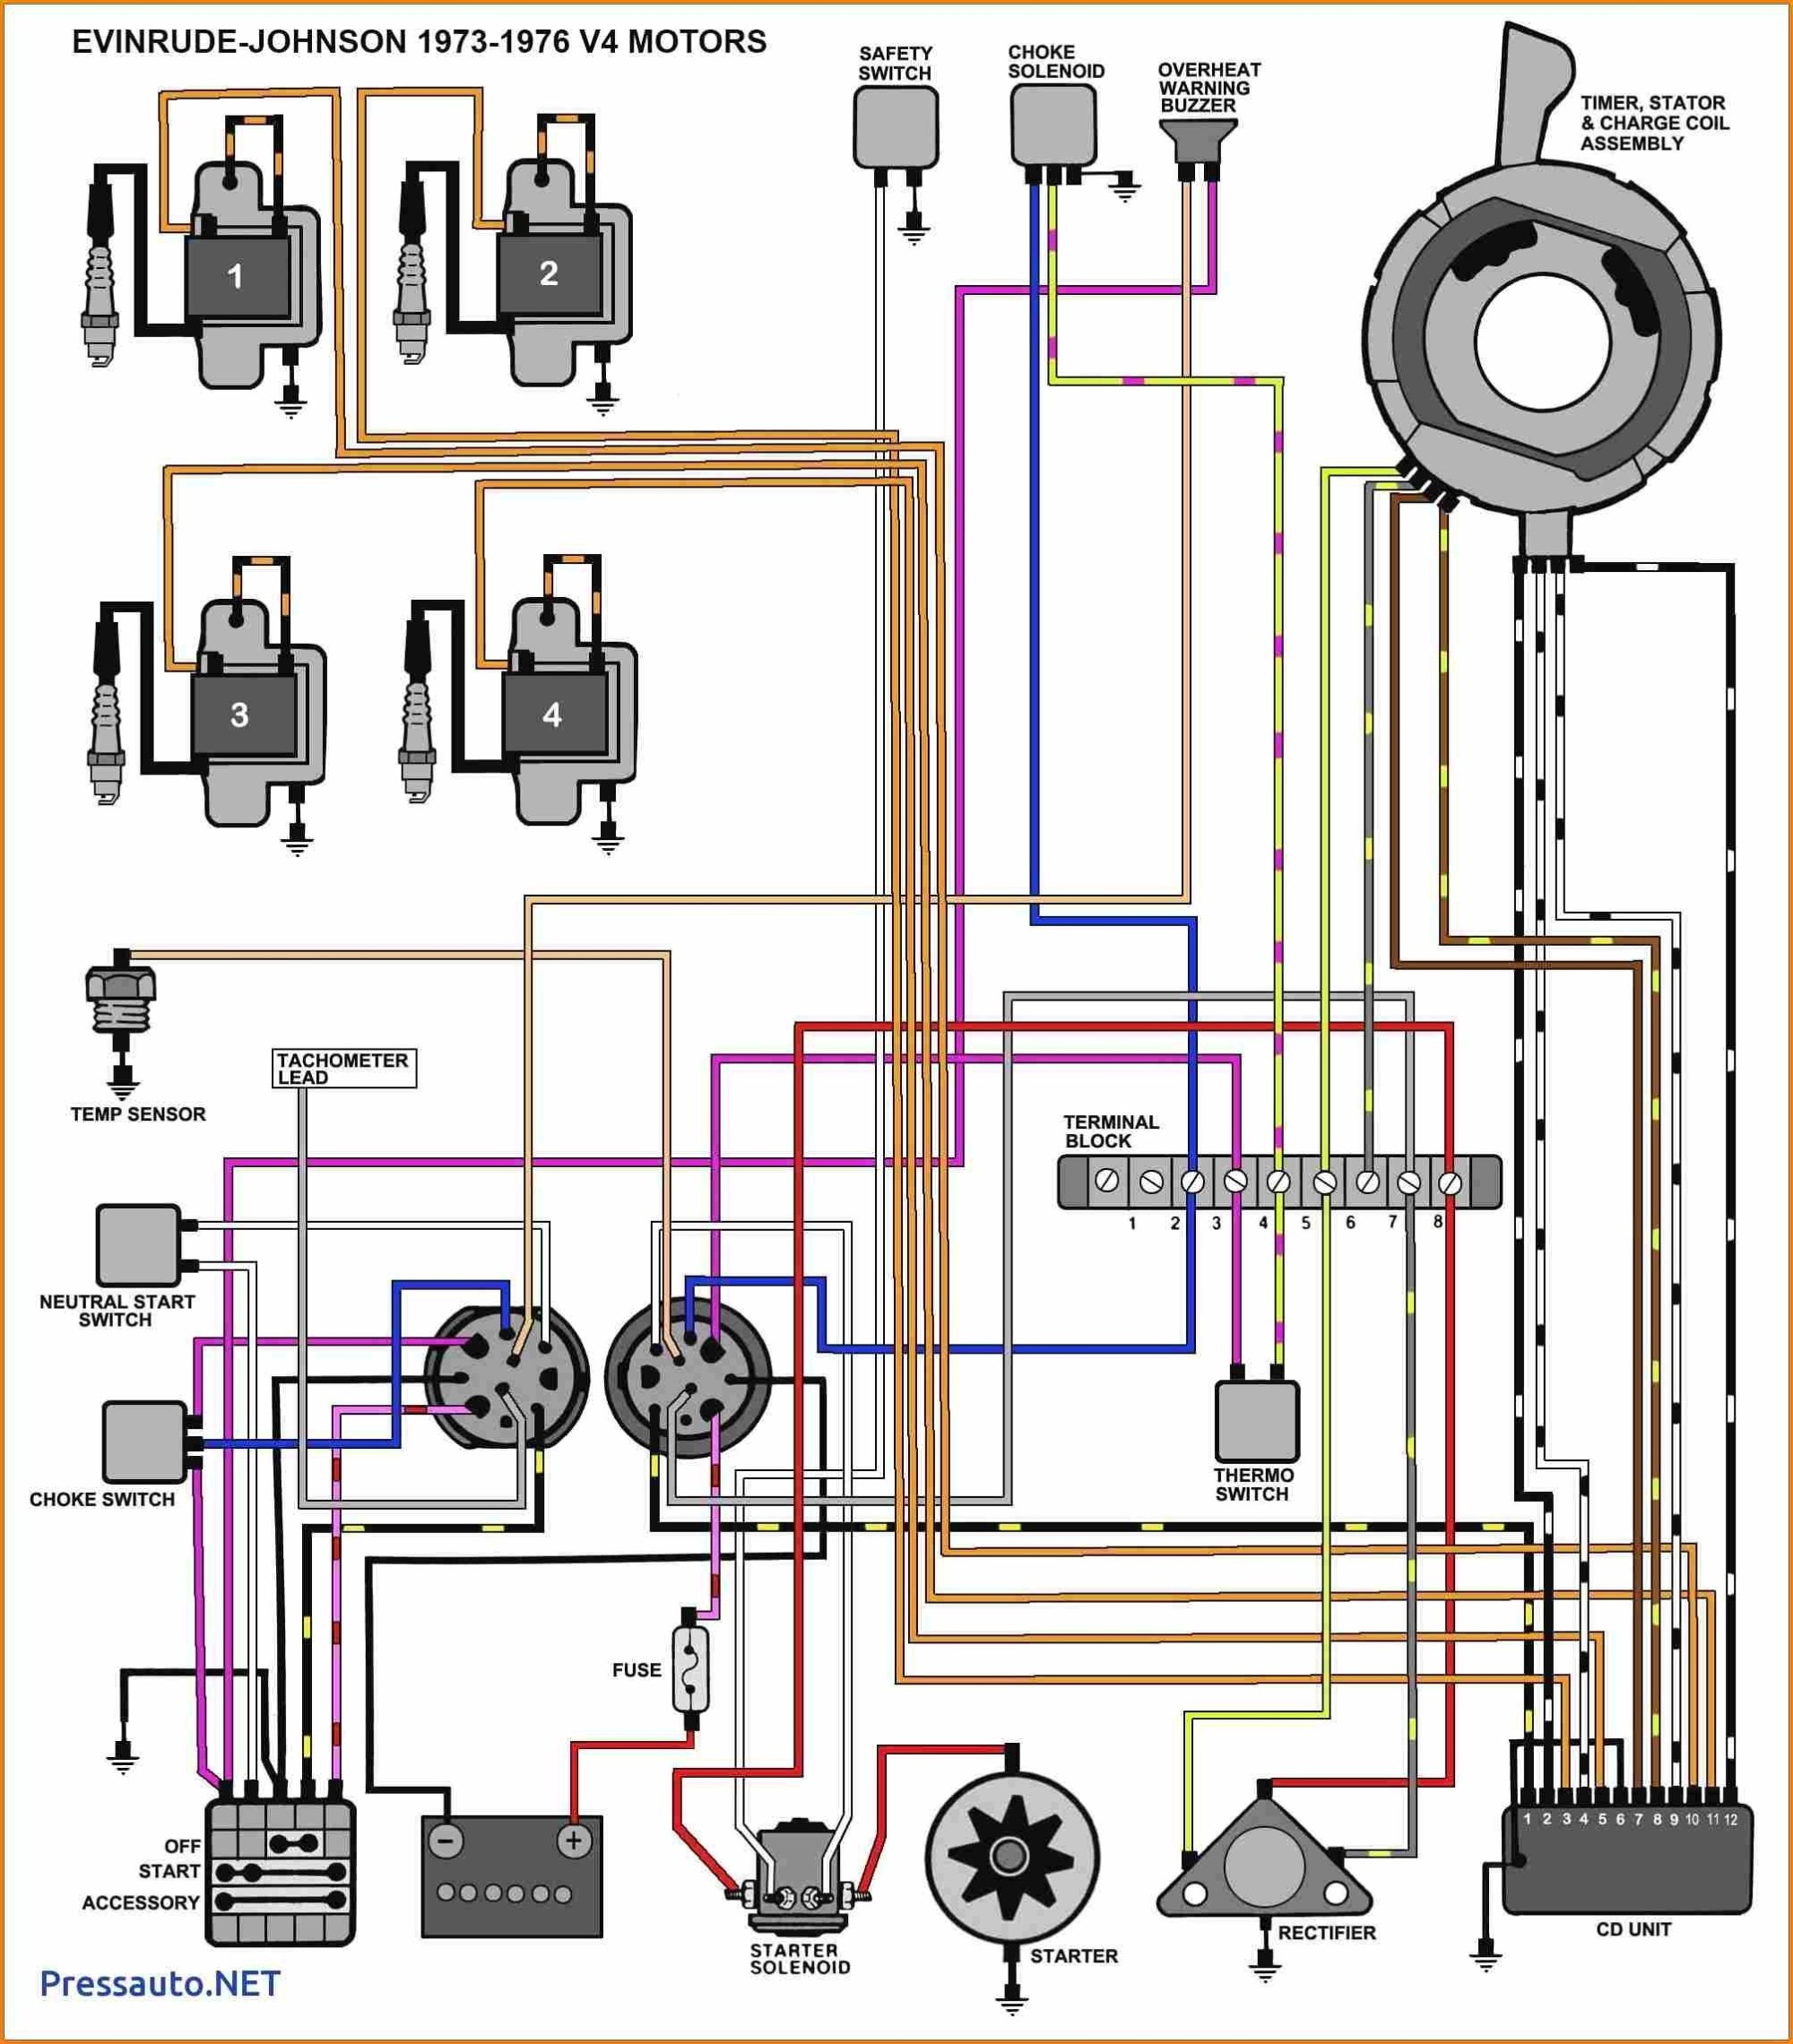 hight resolution of wiring diagram for evinrude 35 hp outboard free download wiring wiring diagram further evinrude wiring harness diagram on mercruiser